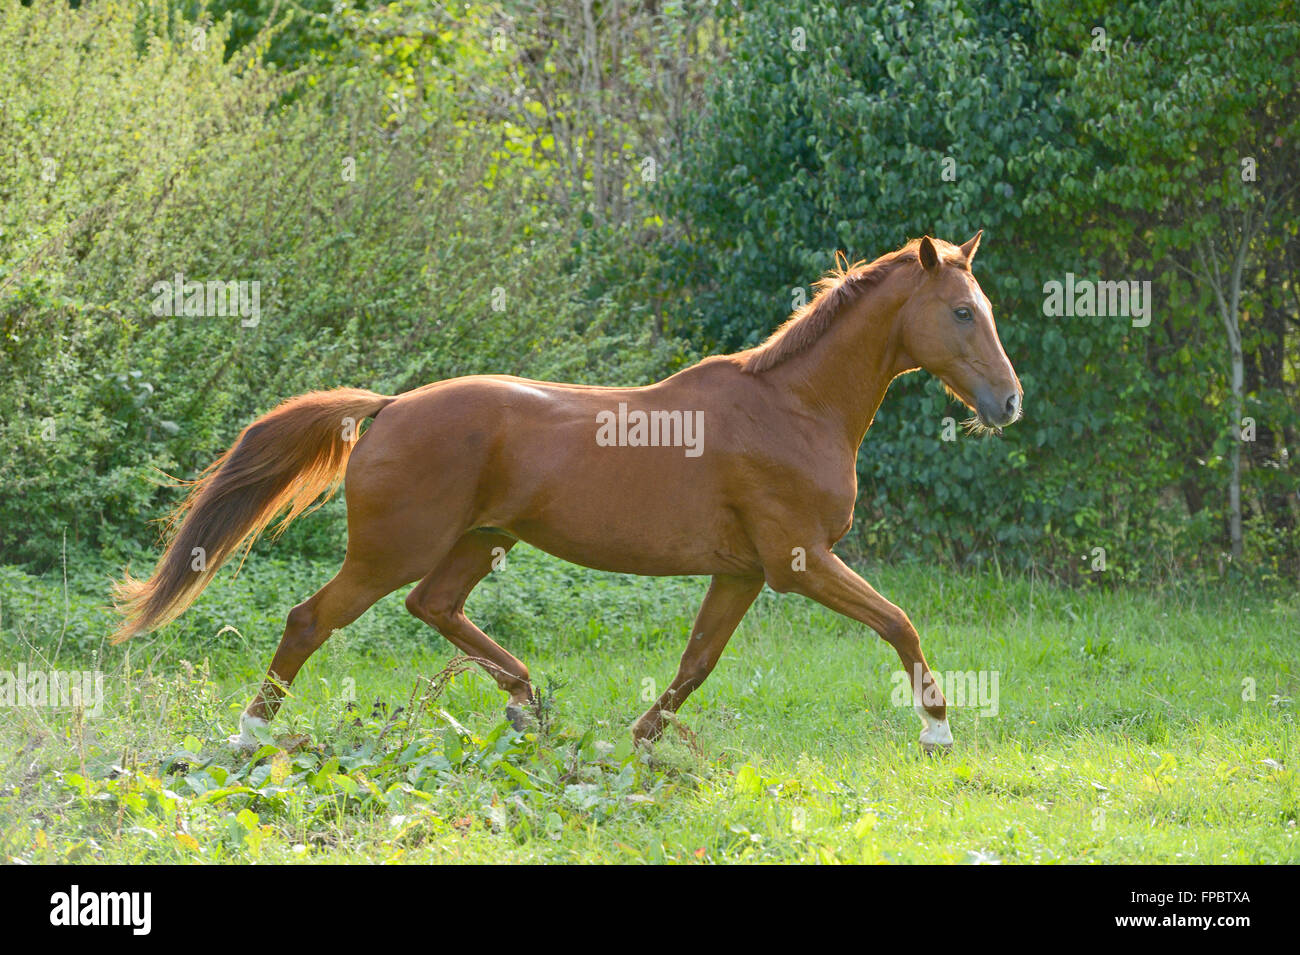 Trakehnen horse trotting in the field - Stock Image